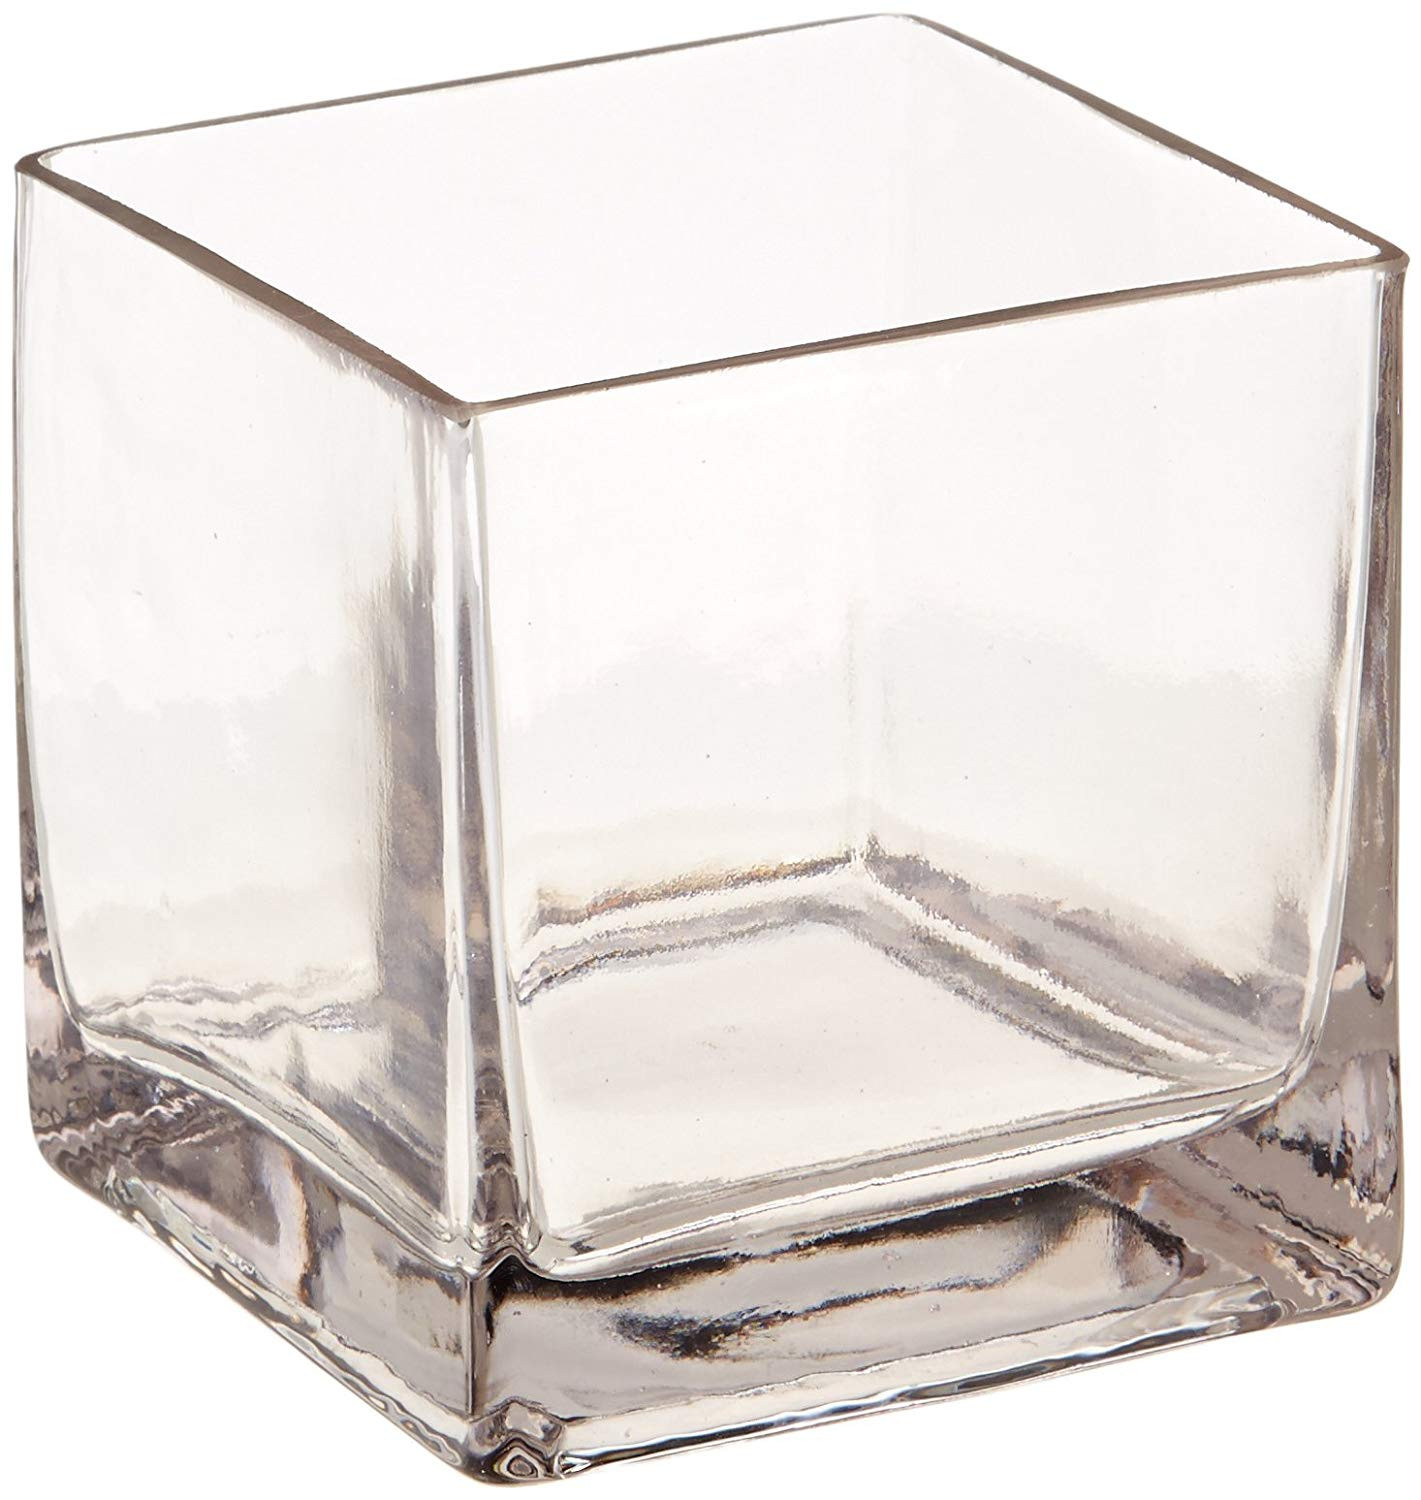 6 inch glass vase of amazon com 12piece 4 square crystal clear glass vase home kitchen for 71 jezfmvnl sl1500